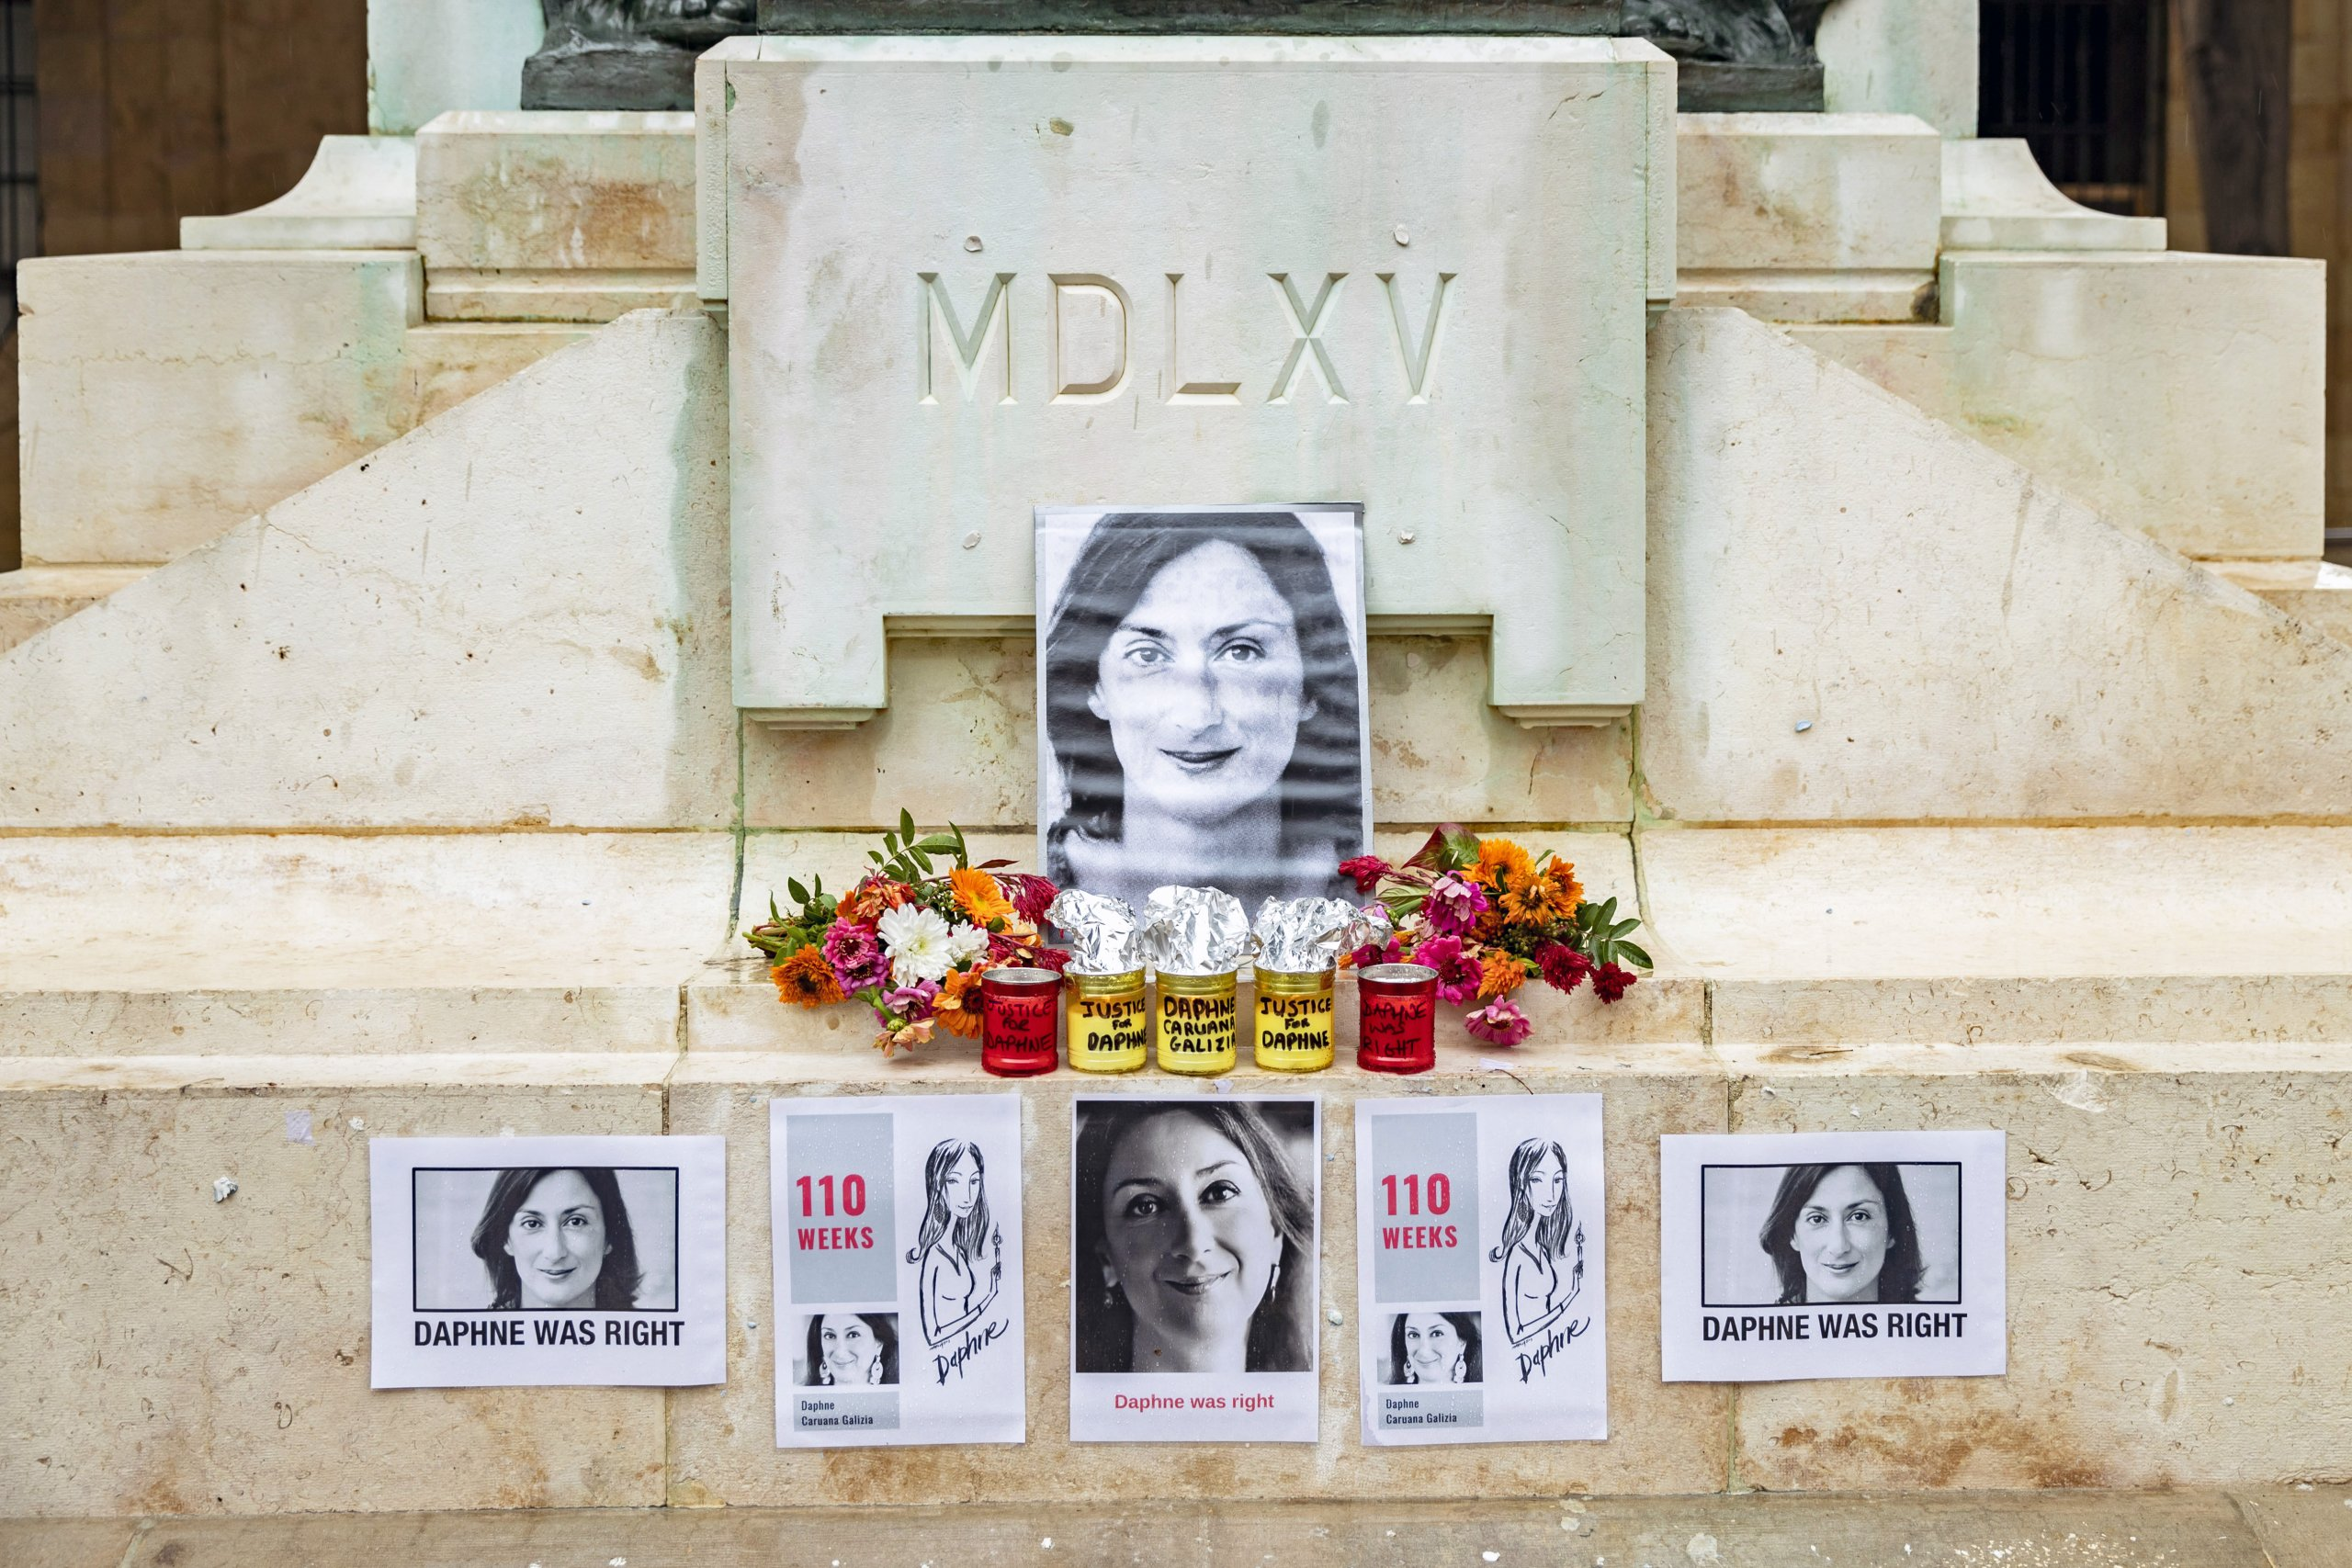 Still no justice for Daphne Caruana Galizia